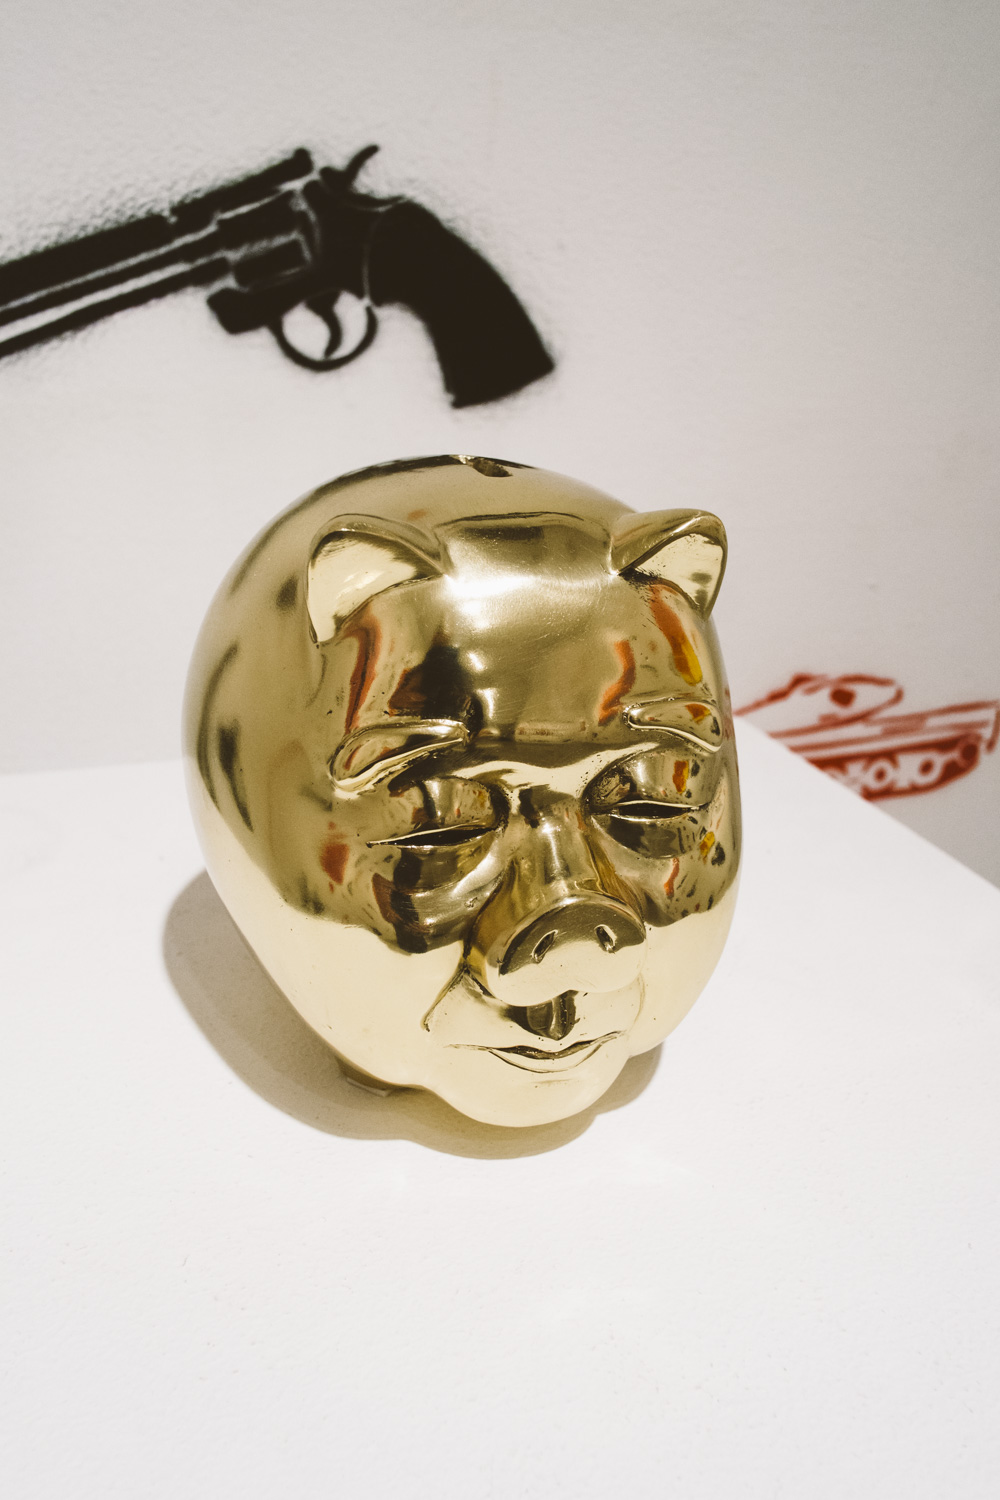 THE CORRUPT PIGGY BANK